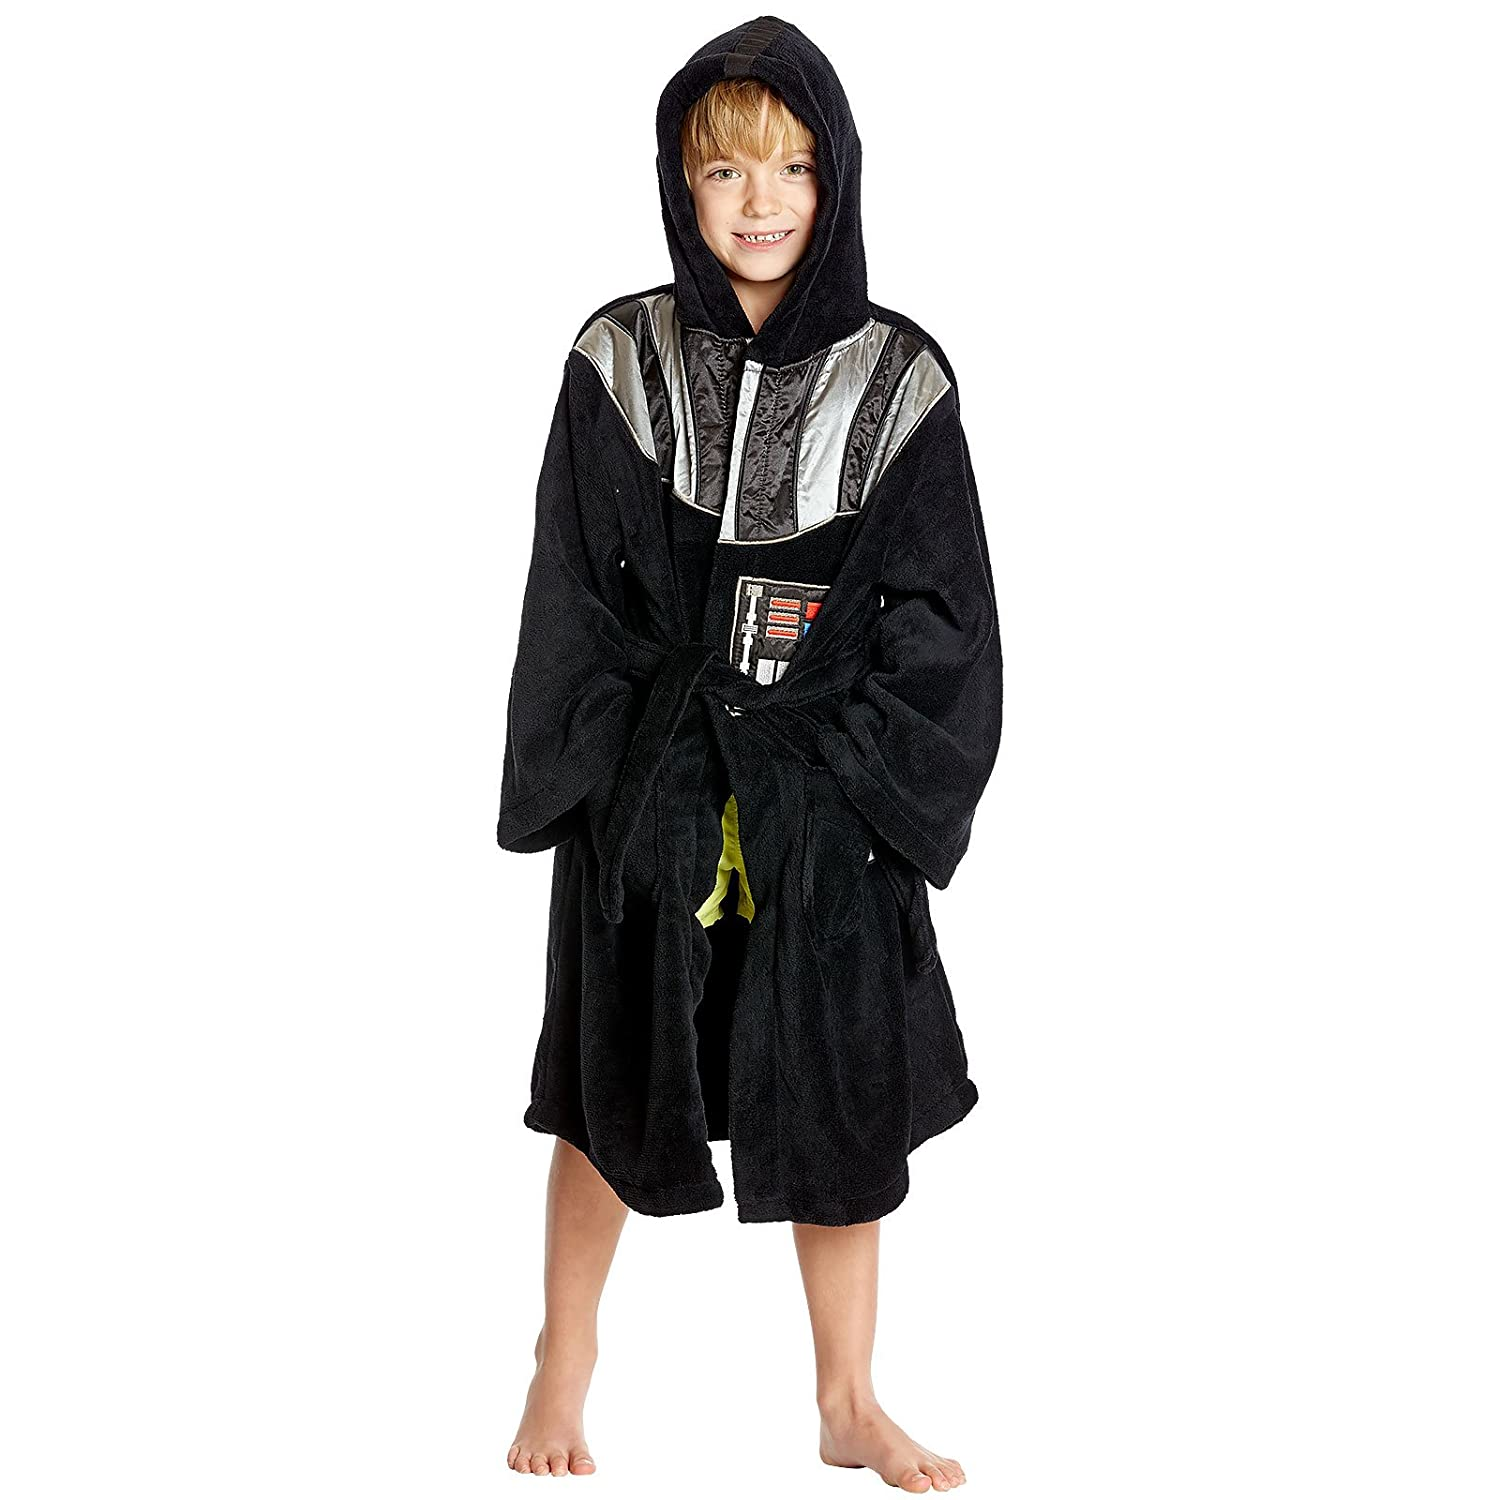 Star Wars Darth Vader Children Bathrobe Black - 10/12 Years